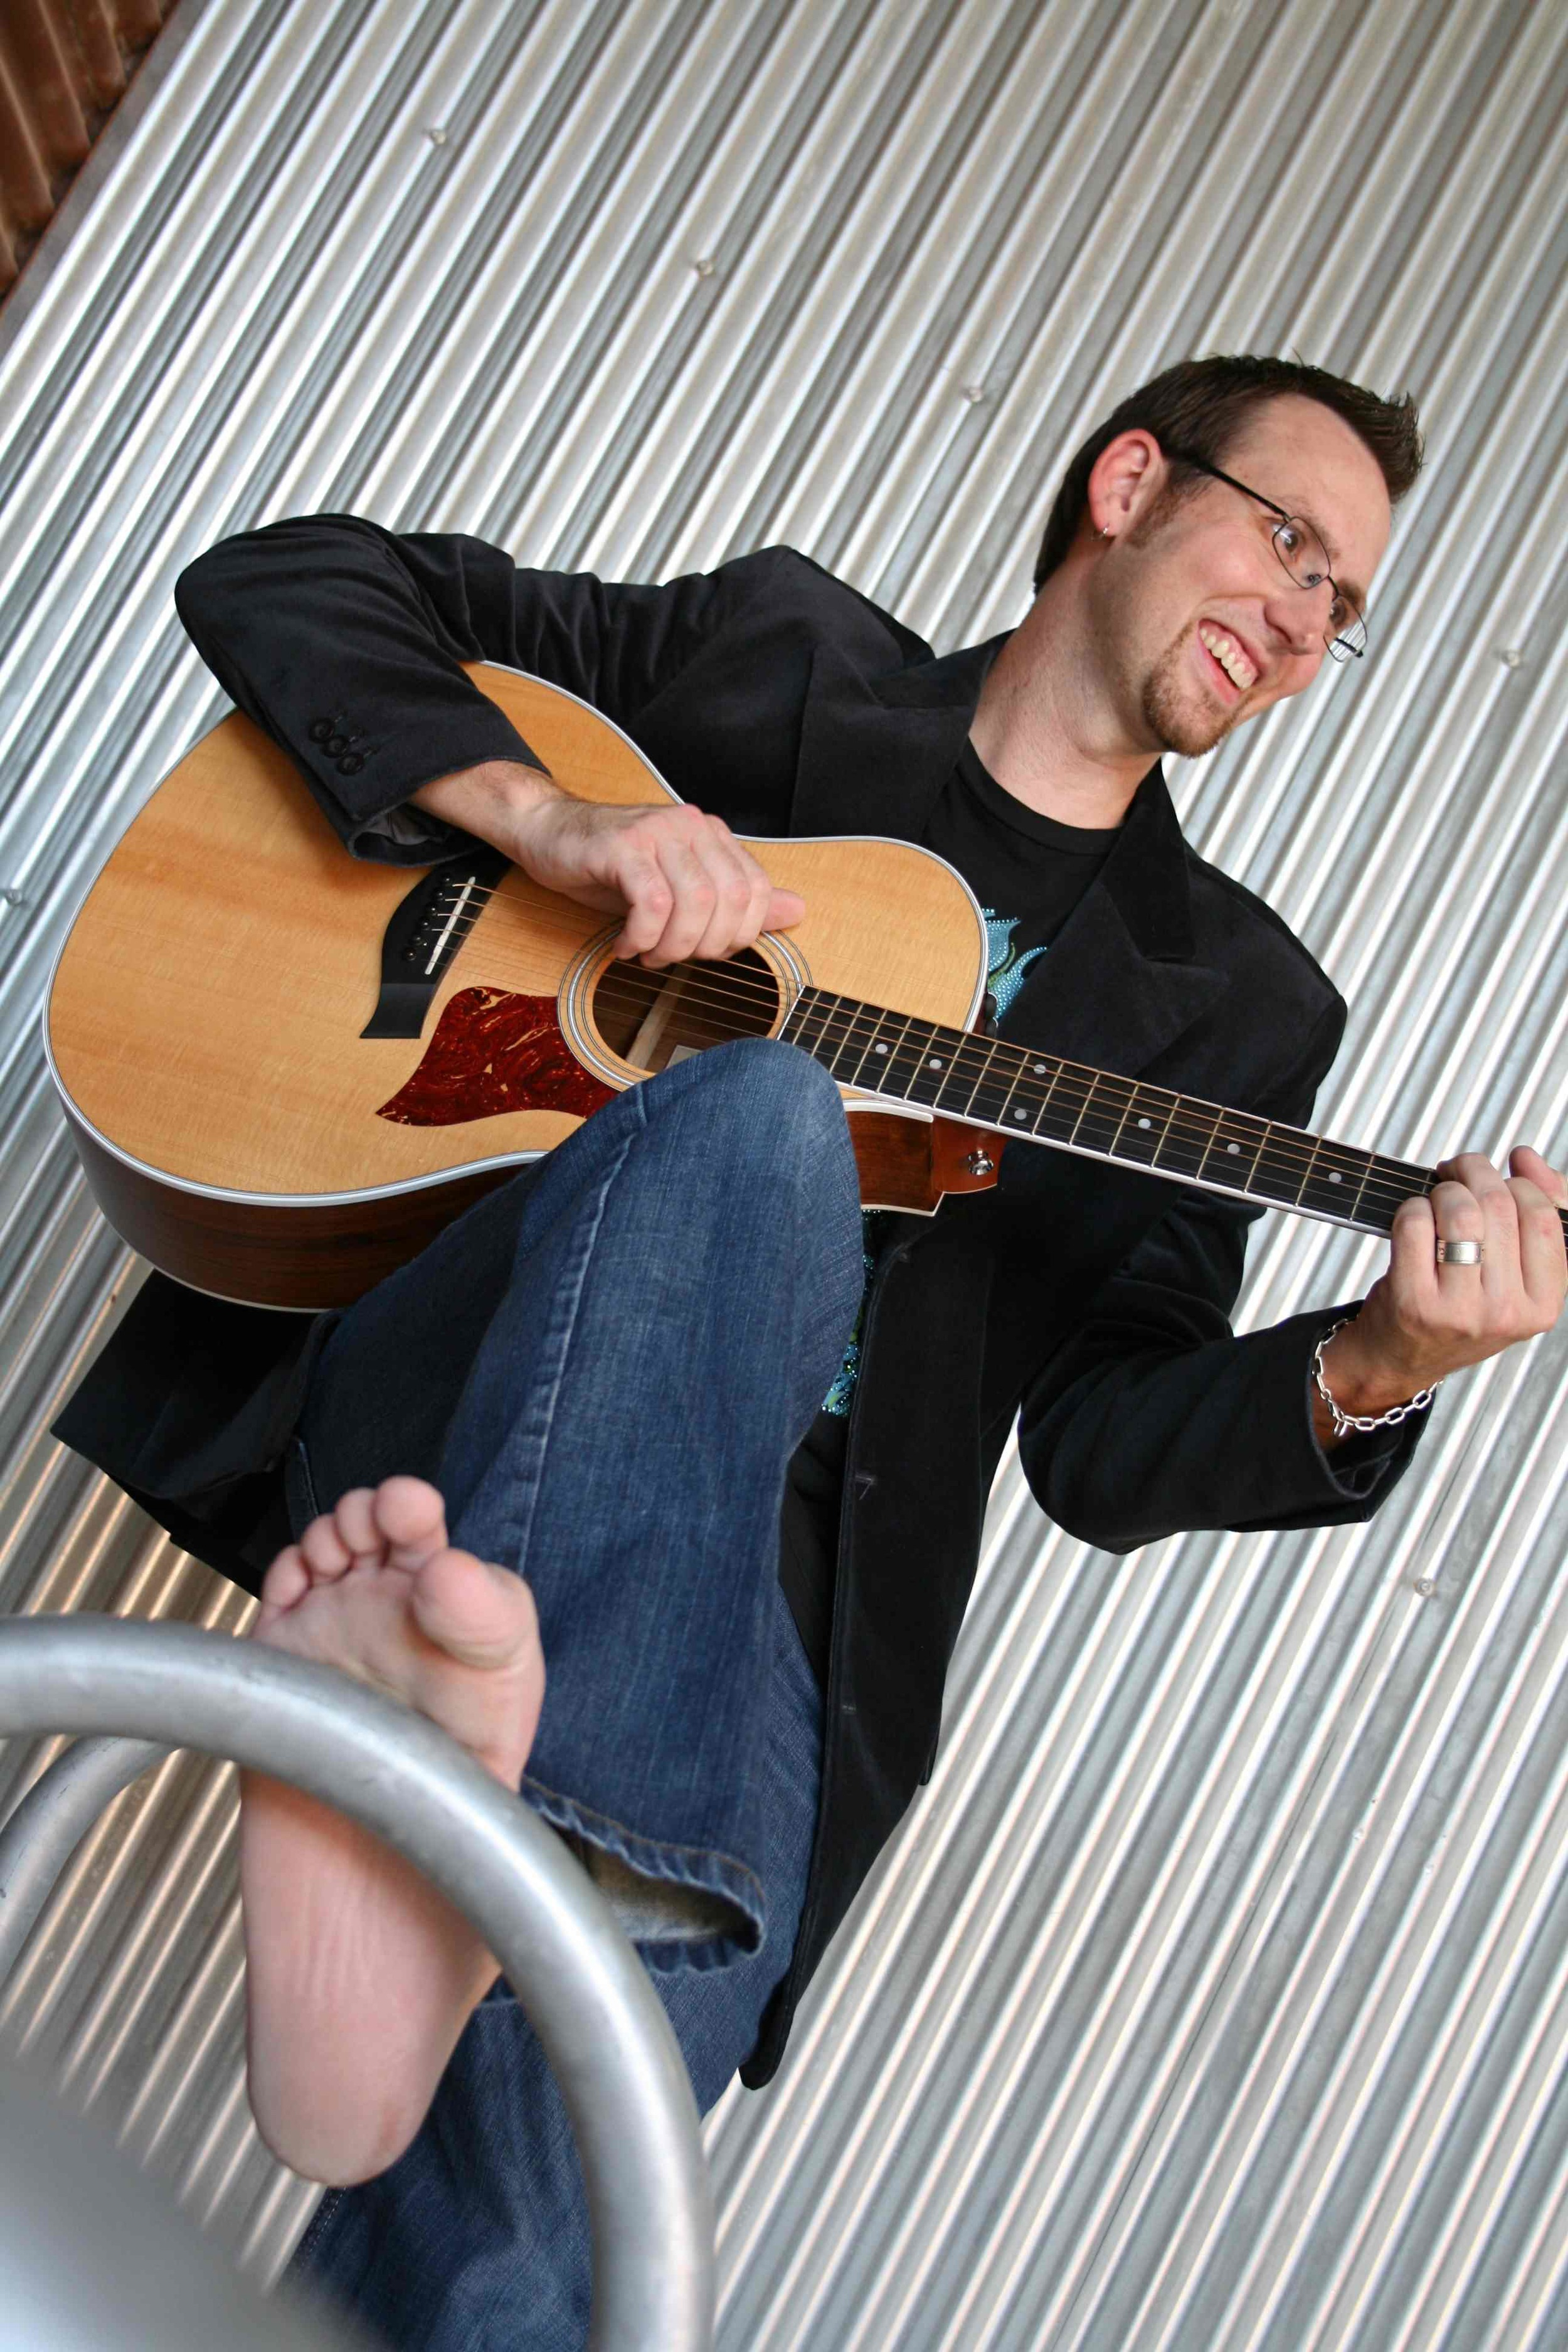 Acoustic and foot-191.jpg